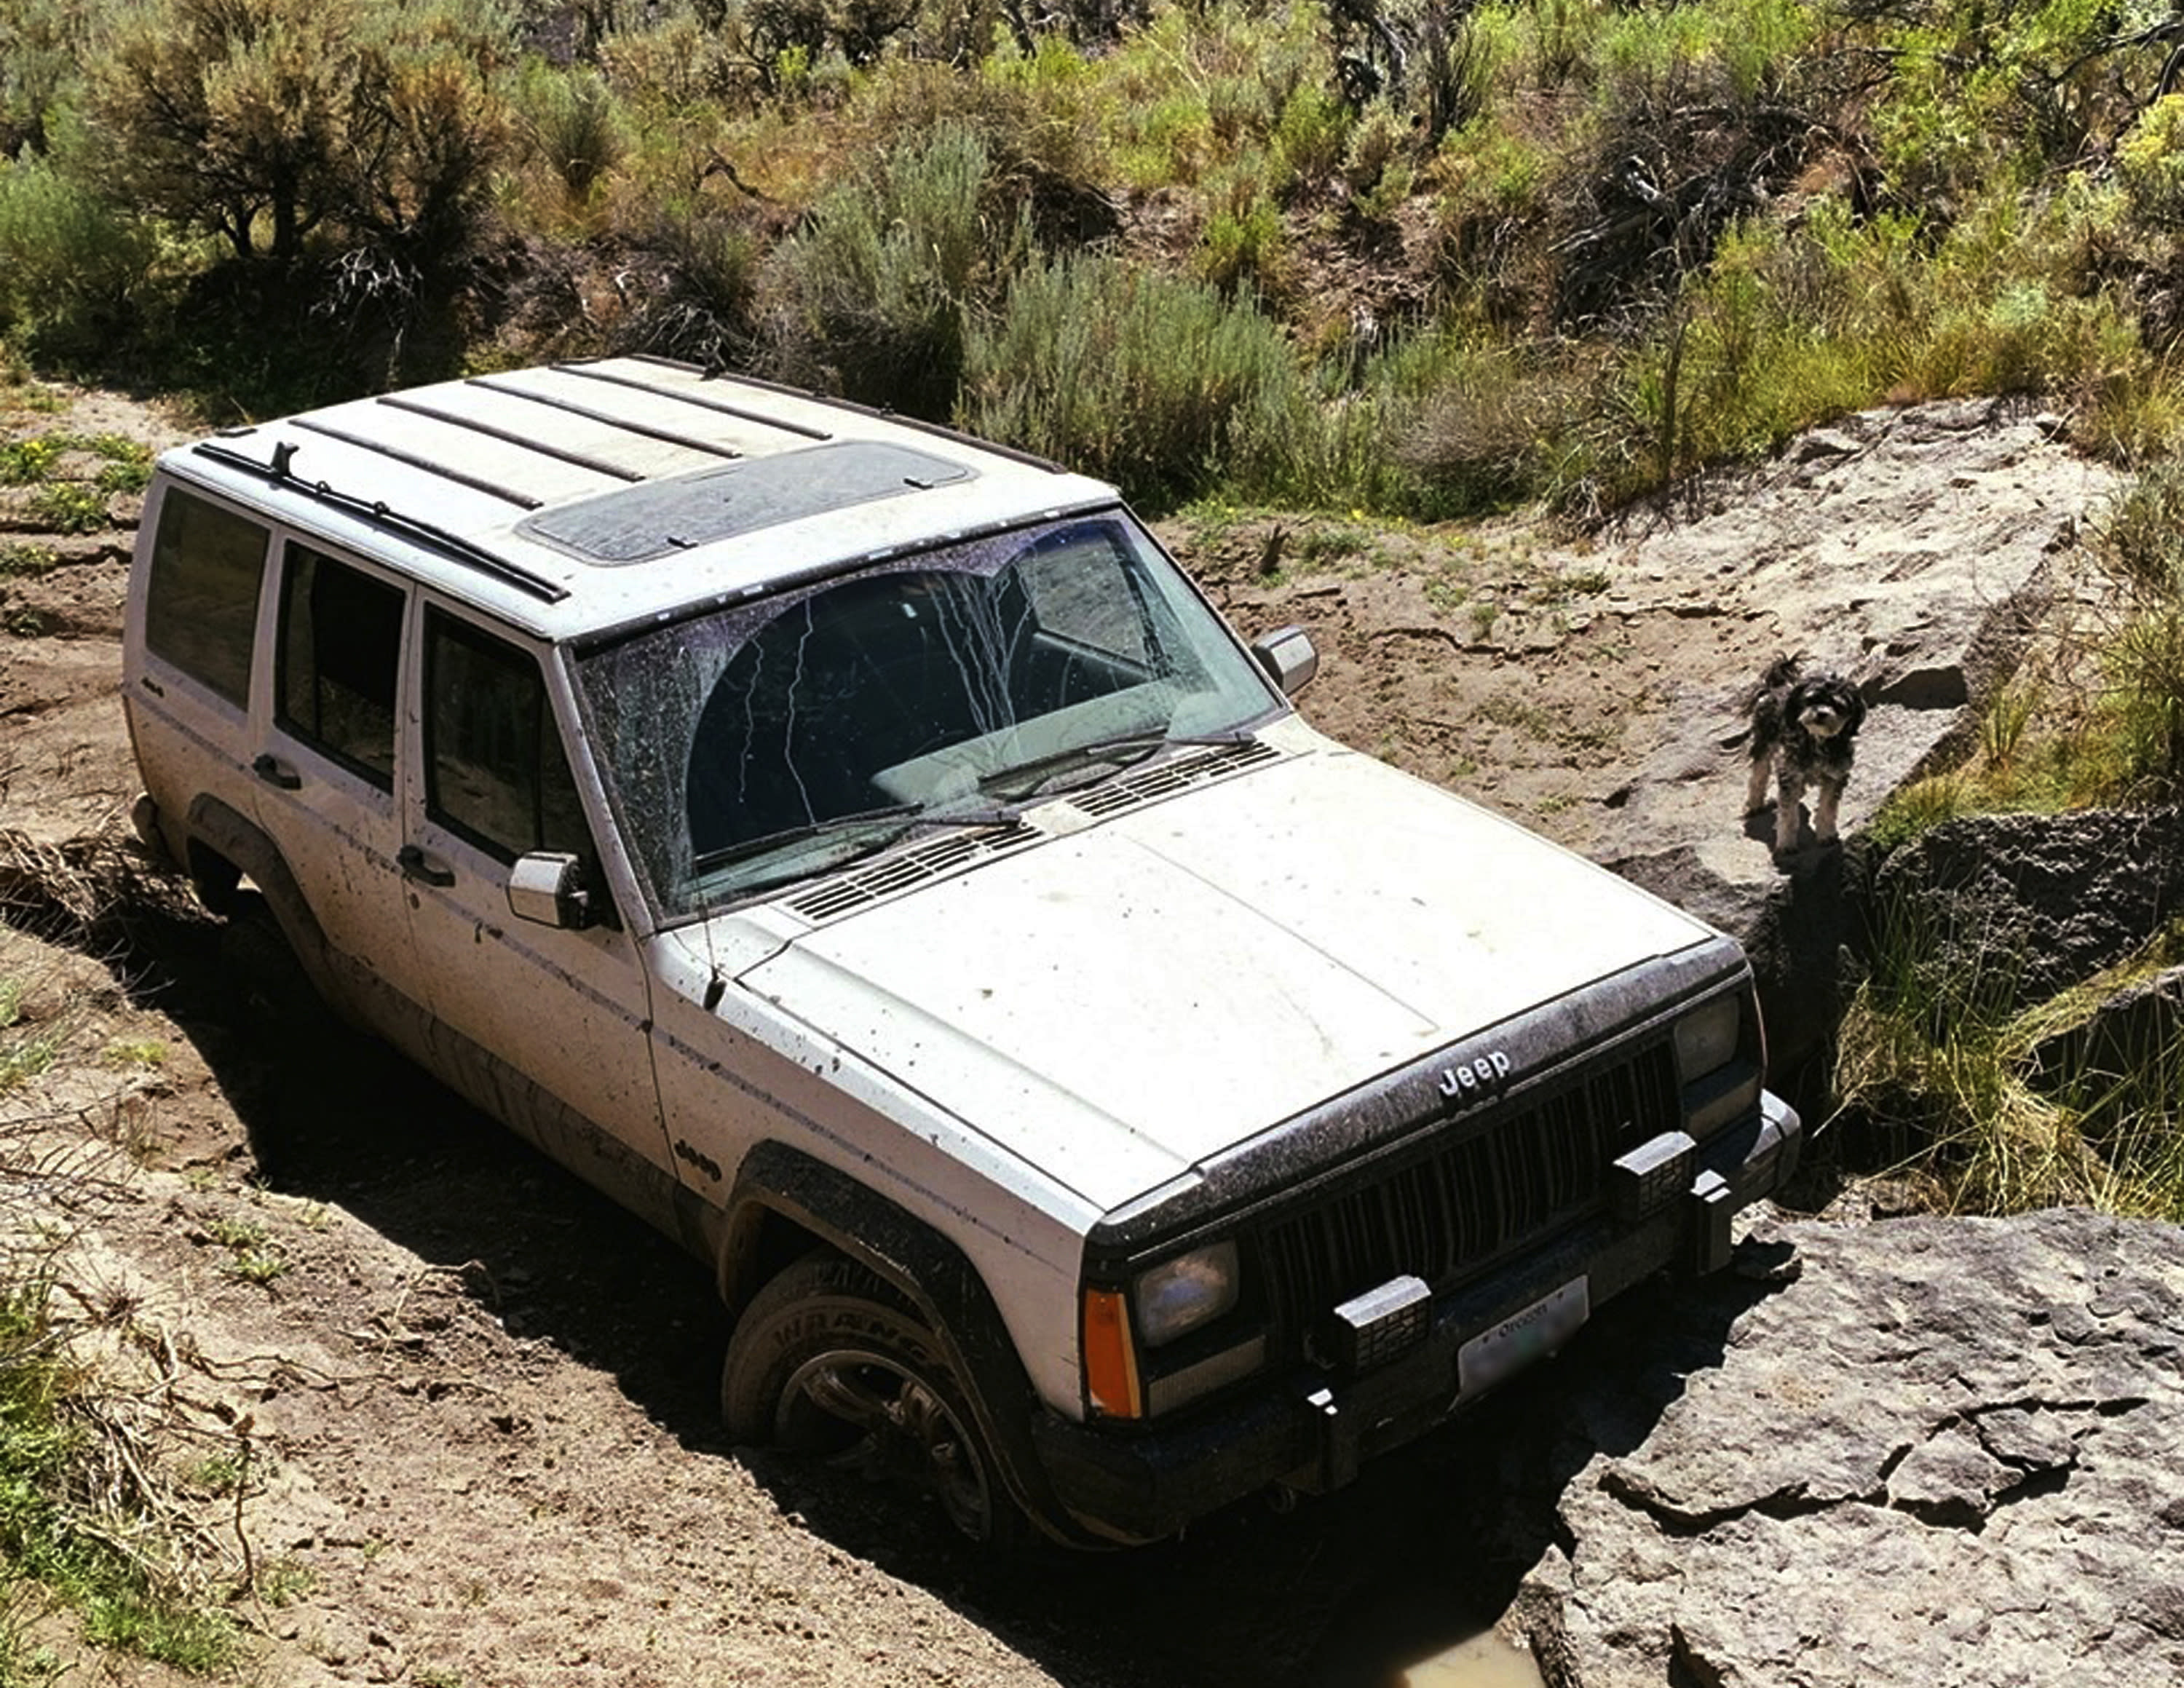 This undated photo provided by the Oregon State Police shows a jeep and dog belonging to a 73-year-old man who was found by a mountain biker on July 18, 2019. The 73-year-old man who was stranded in the remote Oregon high desert for four days with his two dogs was rescued when the long-distance mountain biker discovered him near death on a dirt road, authorities said Thursday, July 25. (Oregon State Police via AP)